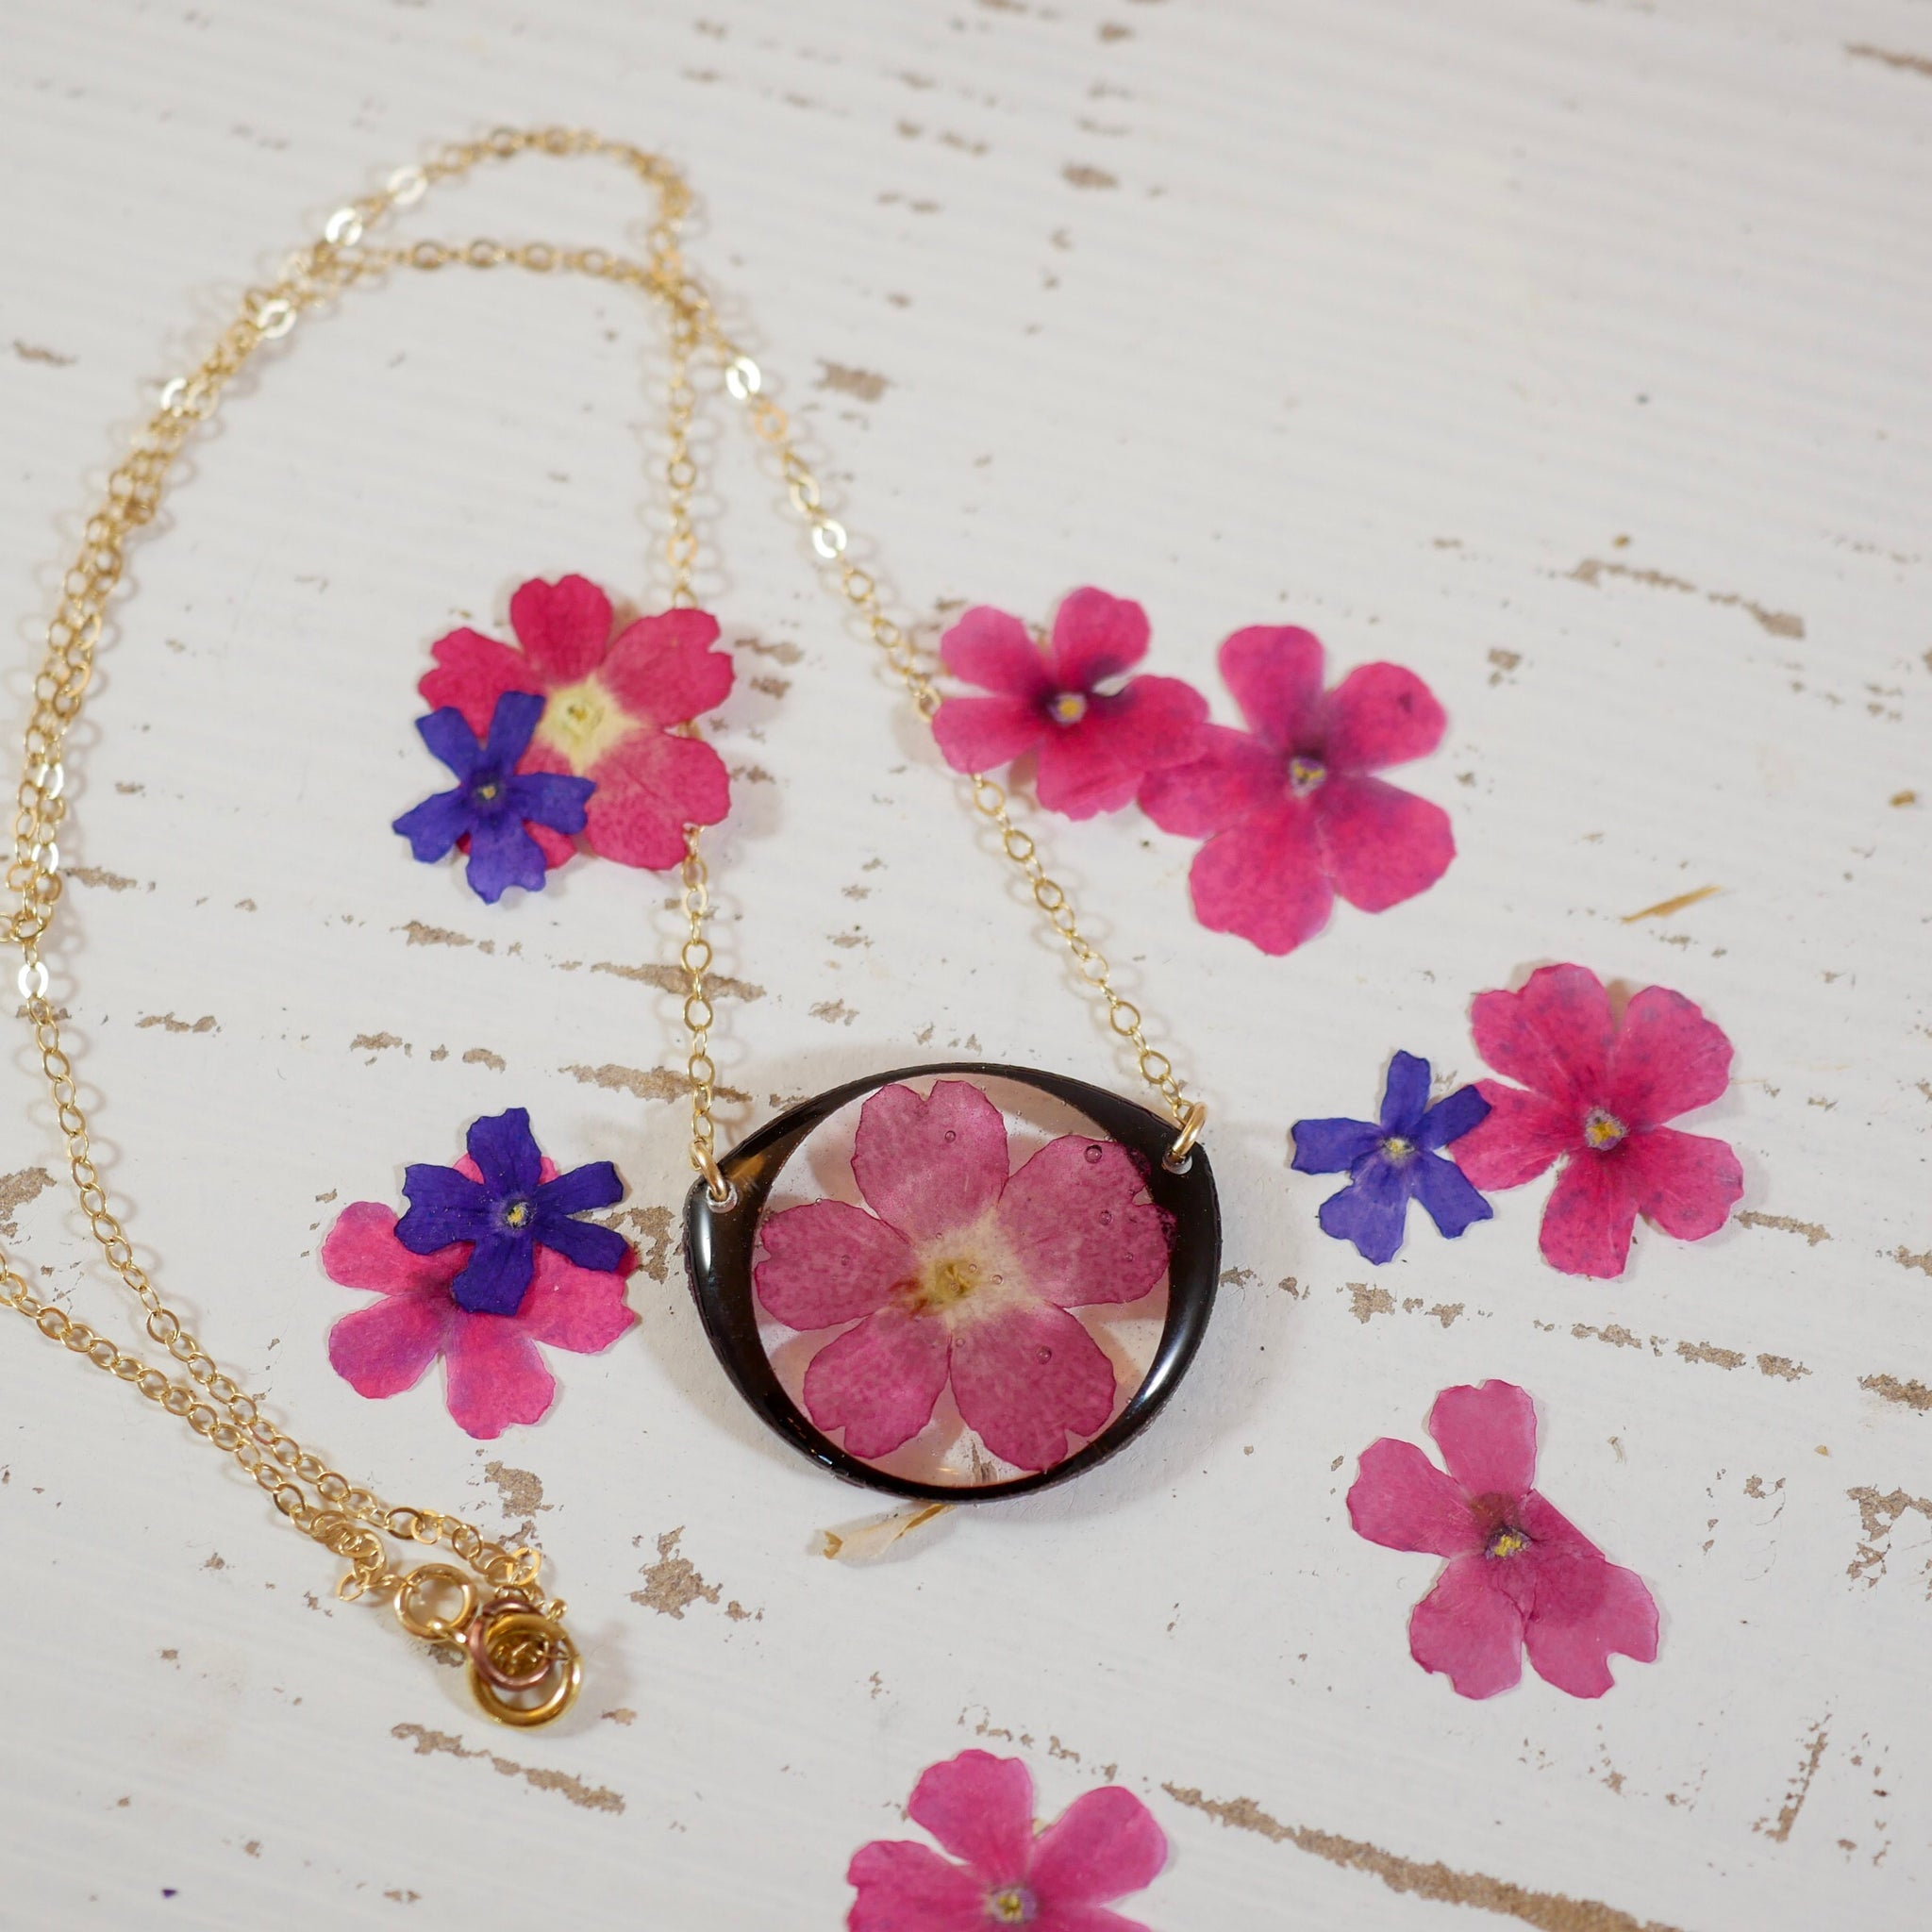 Pink Verbena Necklace